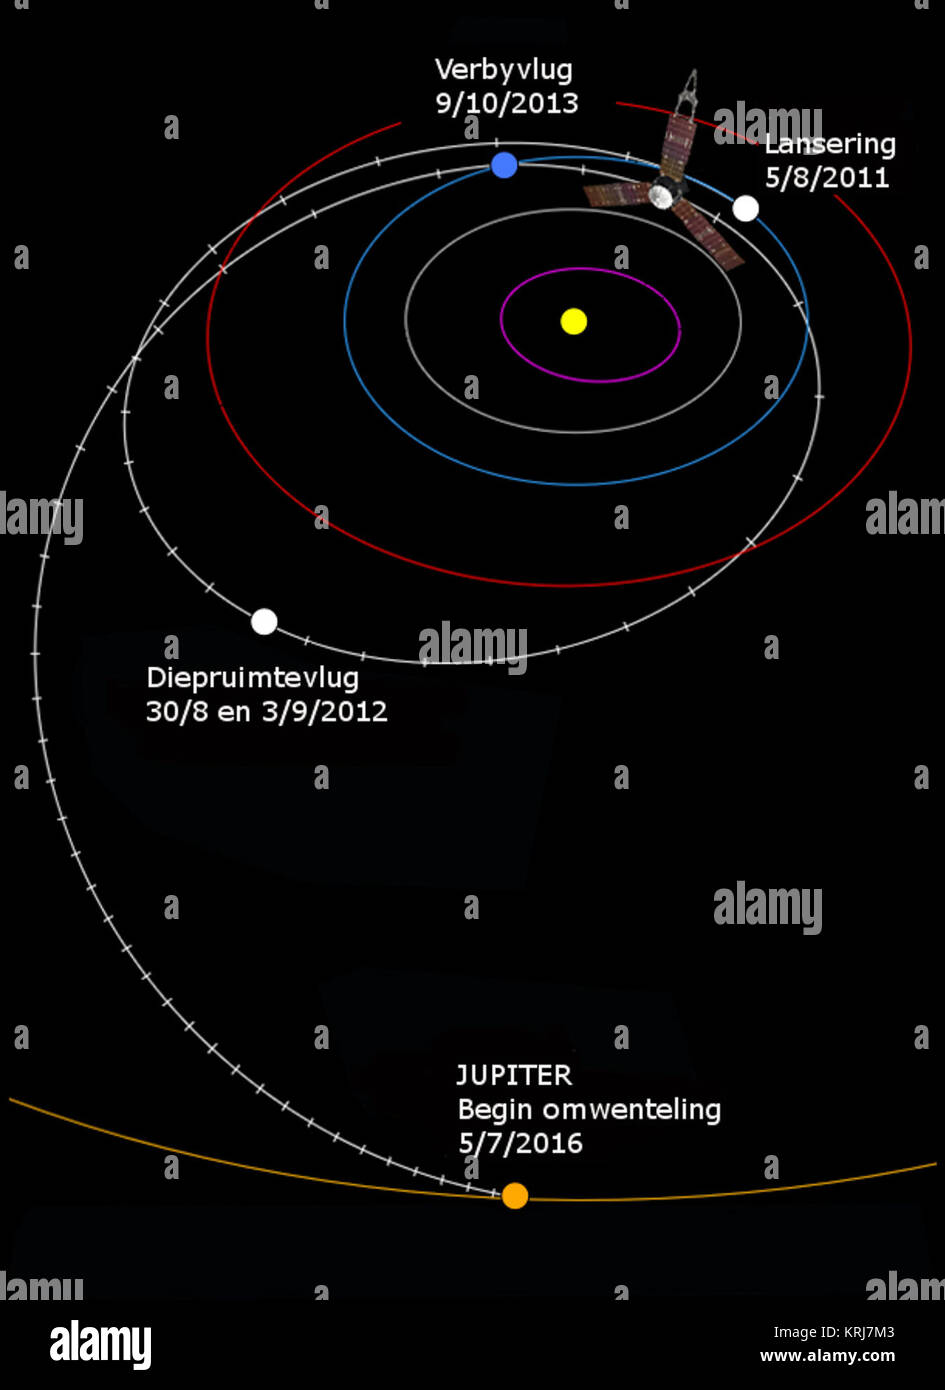 Juno's interplanetary trajectory af - Stock Image